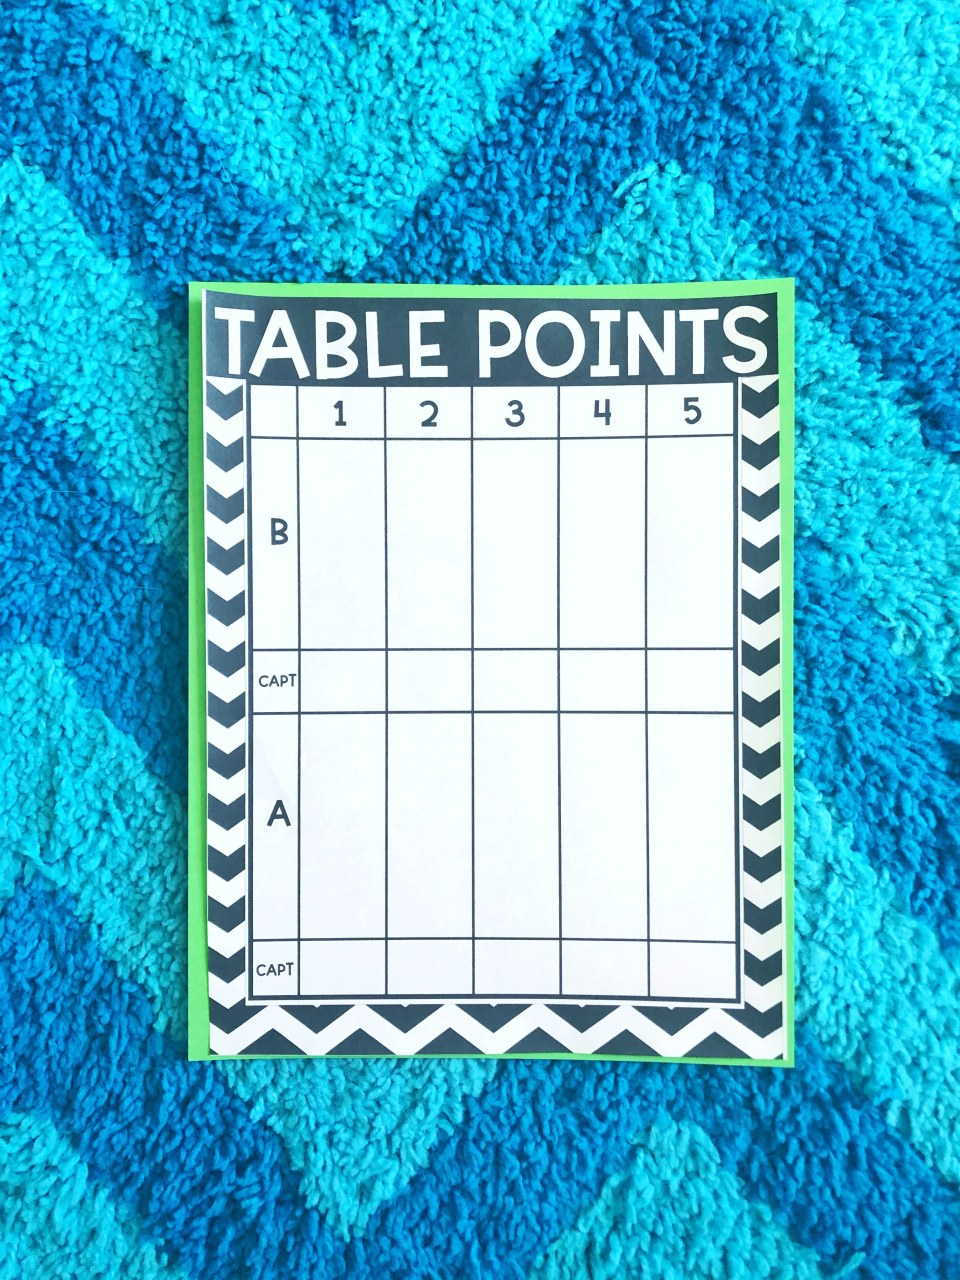 Table points and captains